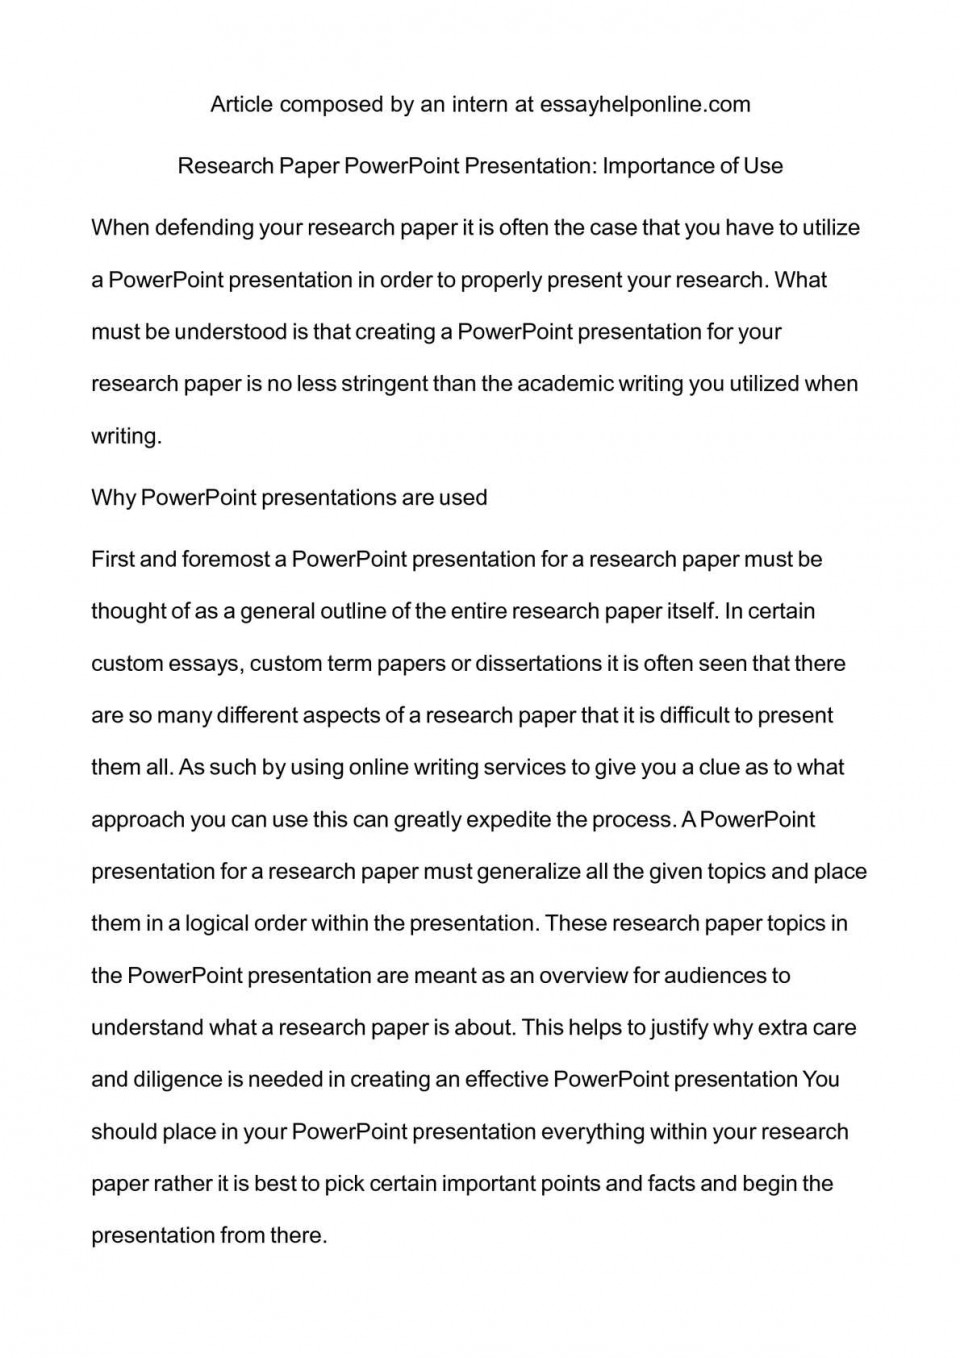 004 How To Research Paper Ppt Outstanding Publish Write Abstract For Prepare 960